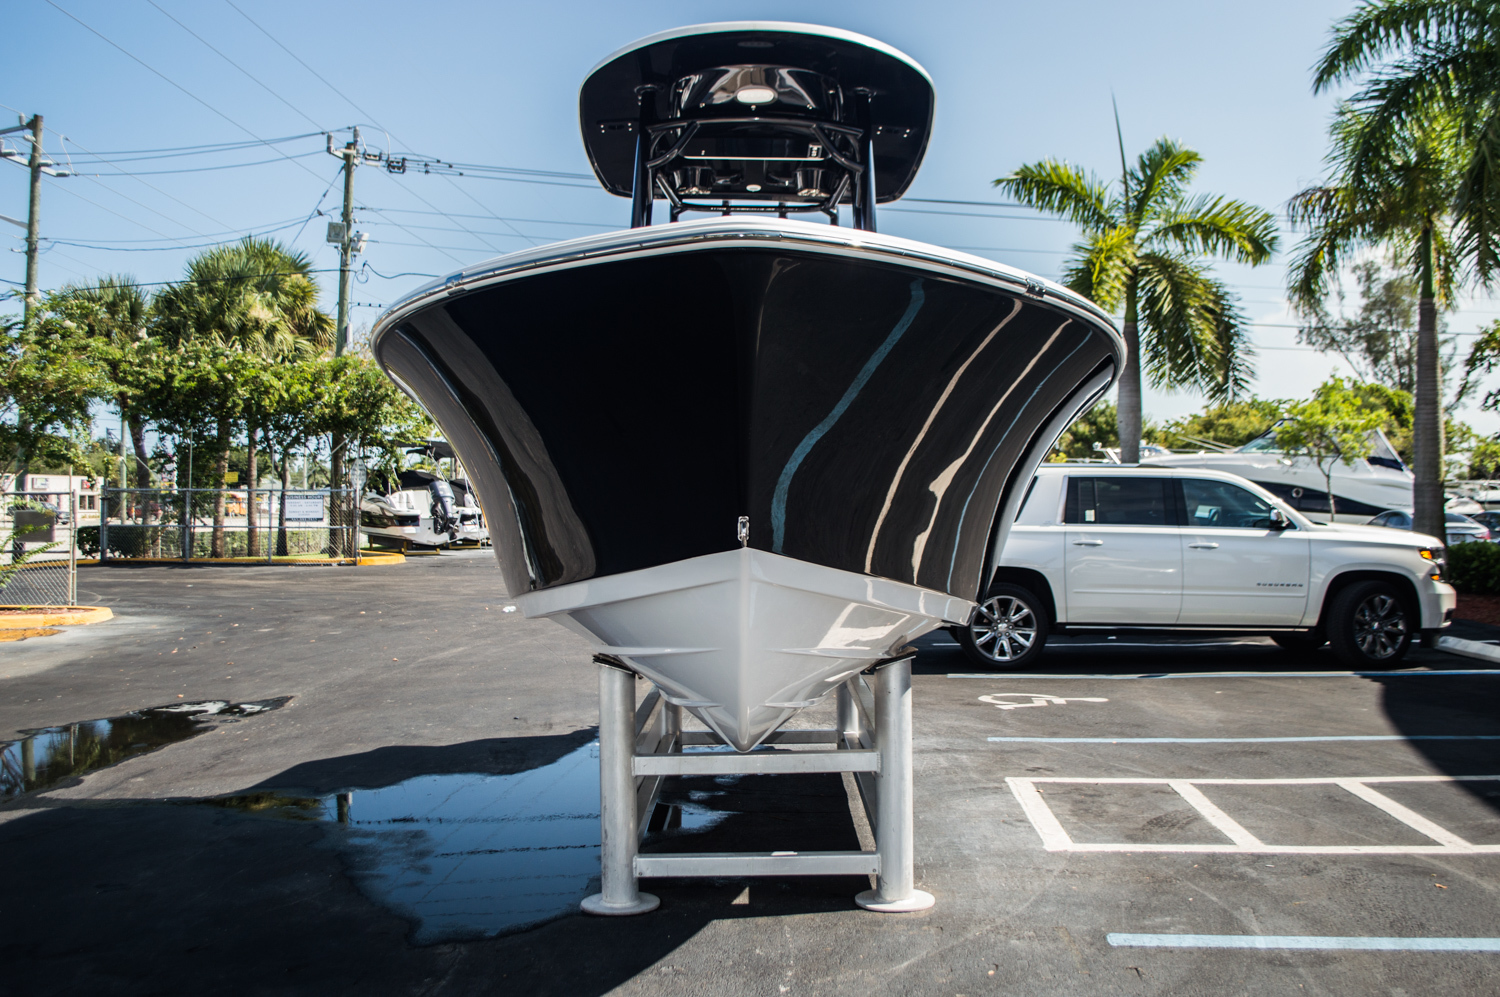 Thumbnail 2 for New 2016 Sportsman Open 212 Center Console boat for sale in West Palm Beach, FL